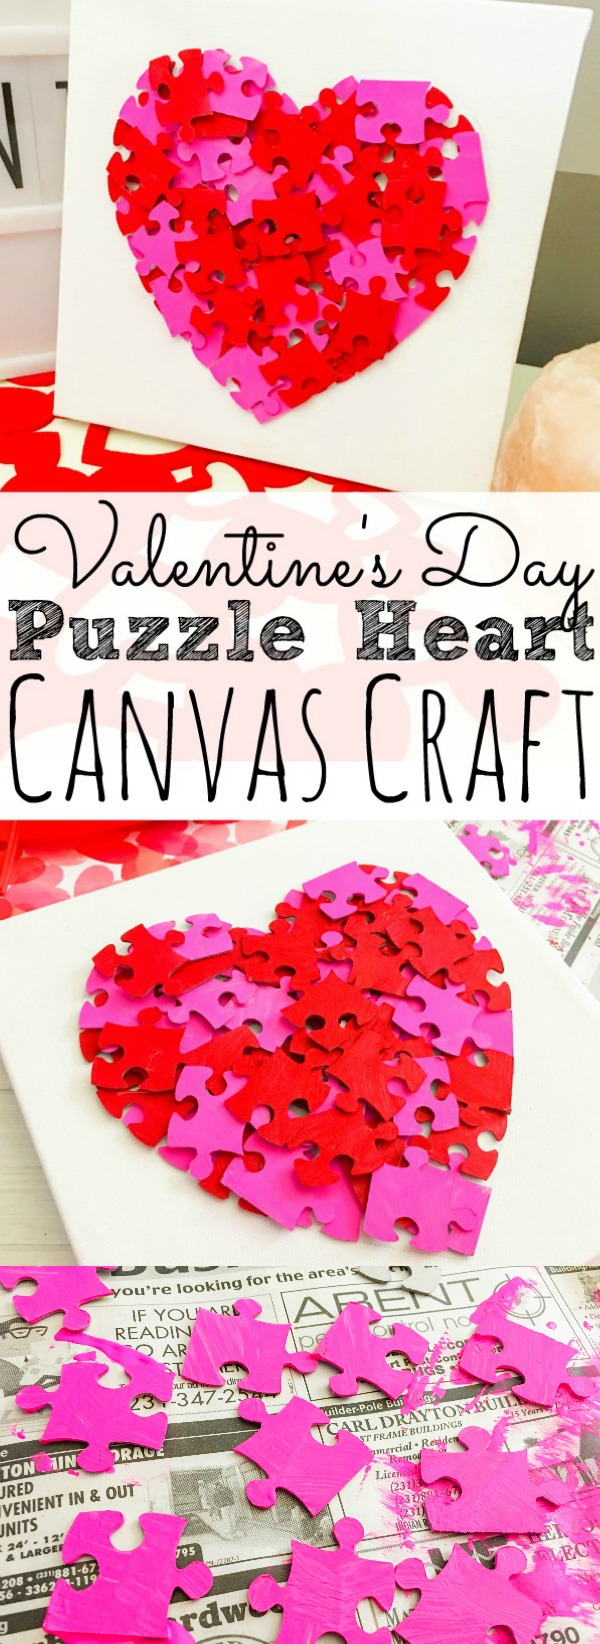 Valentine's Day Puzzle Heart Canvas Craft - simplytodaylife.com